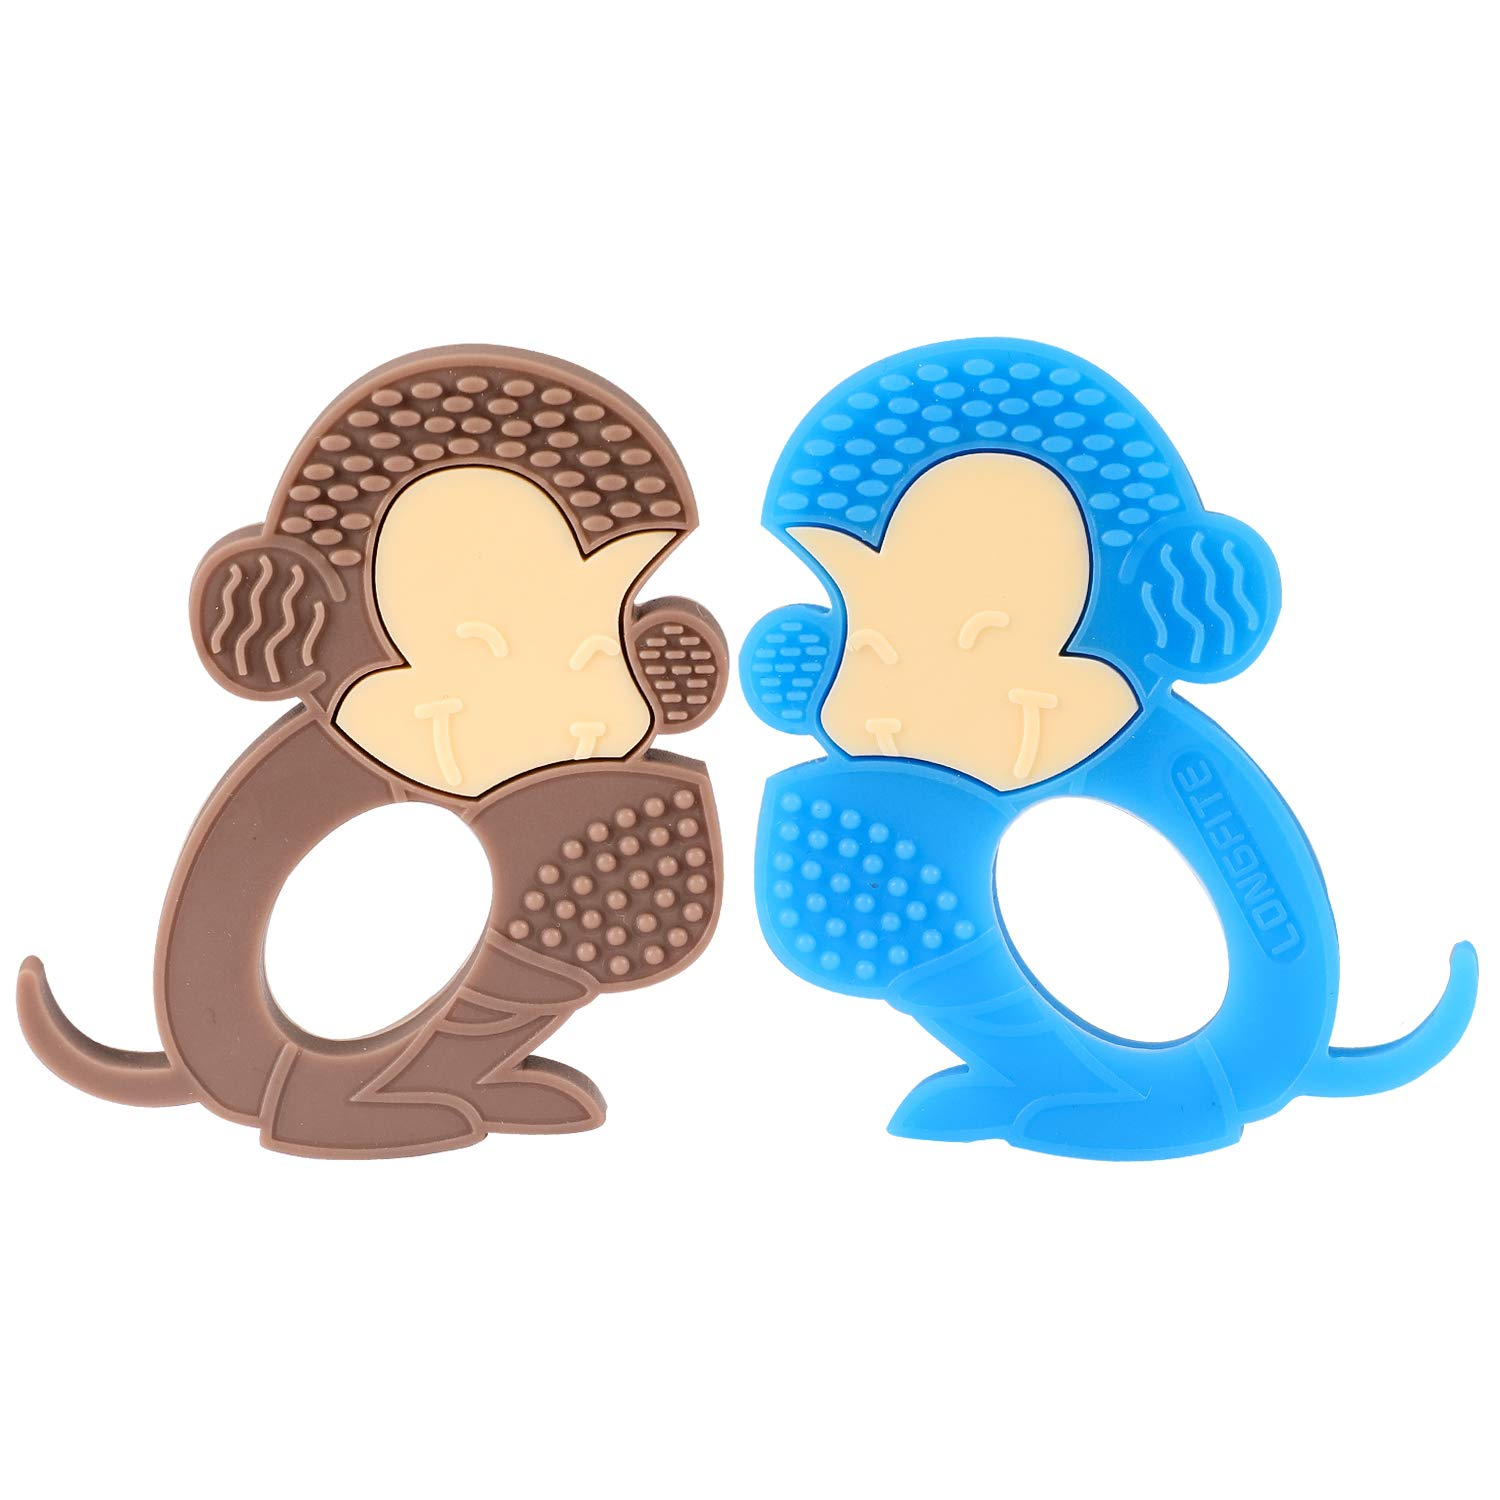 Longfite Baby Teething Toys and Soothing Teether Soft Silicone Monkey Infant Teething Set, Pack of 2